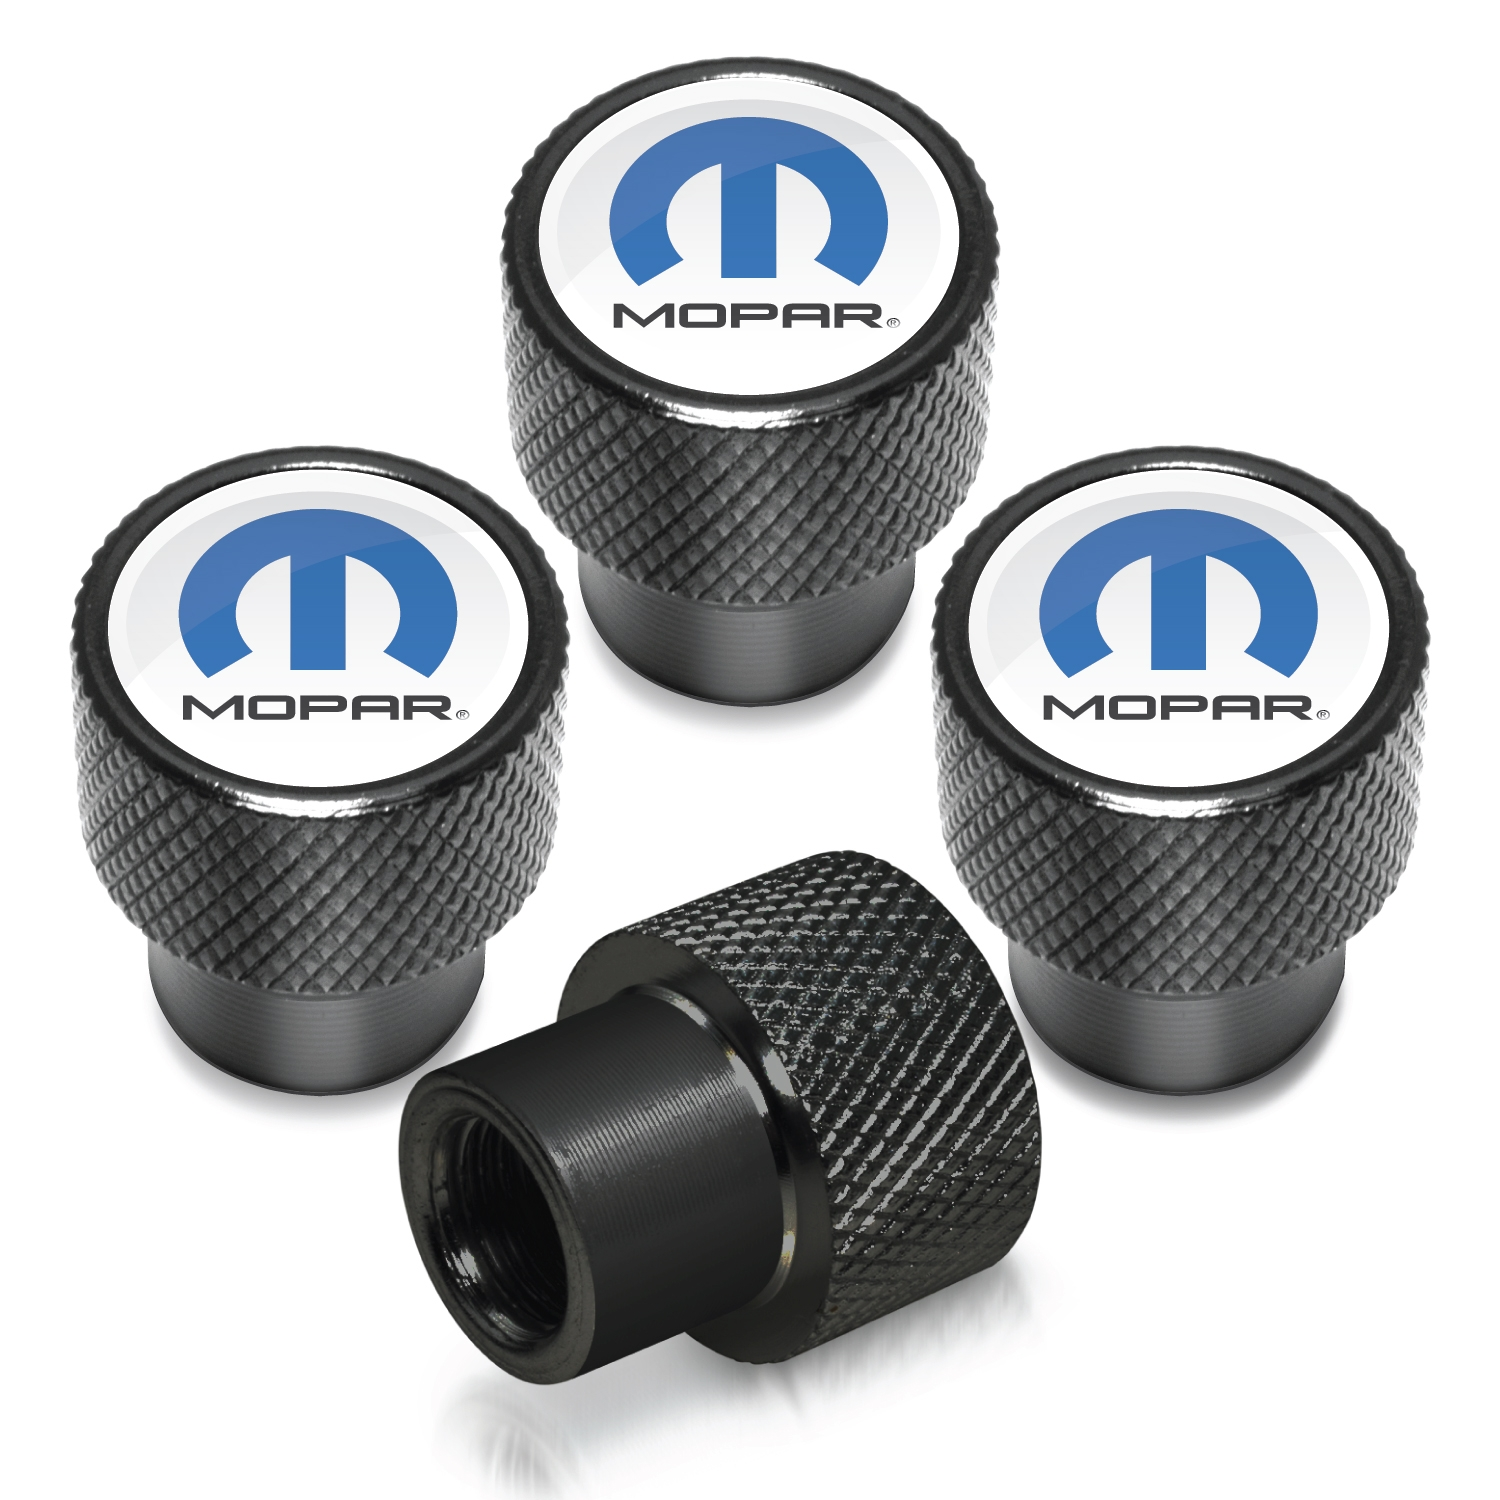 Mopar in White on Black Aluminum Tire Valve Stem Caps